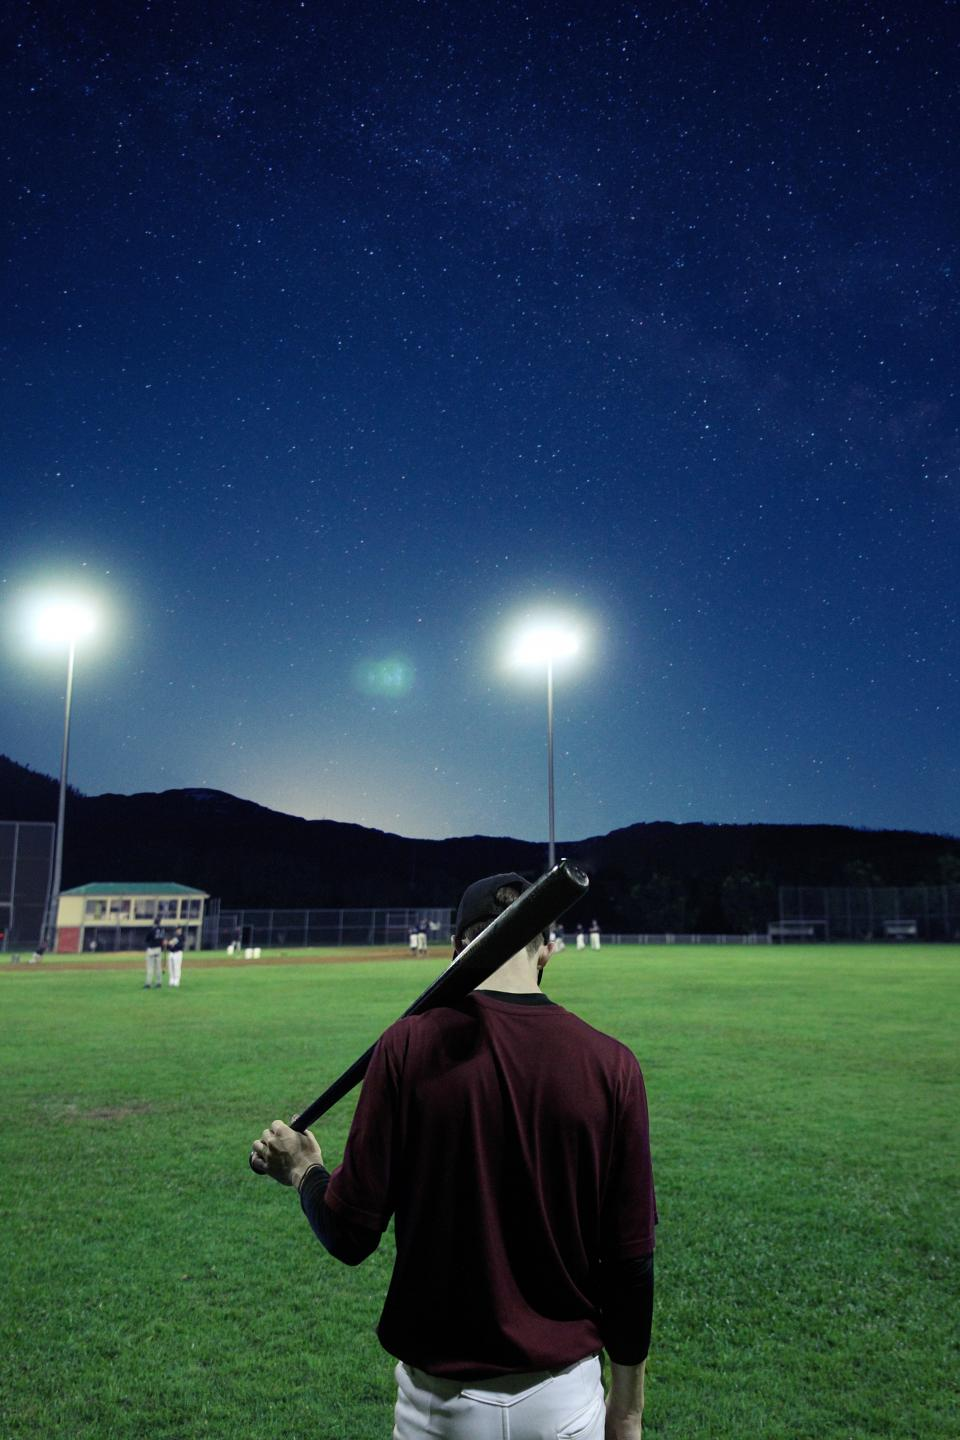 people baseball sports hobby court ball galaxy night sky dark lamp team constellation